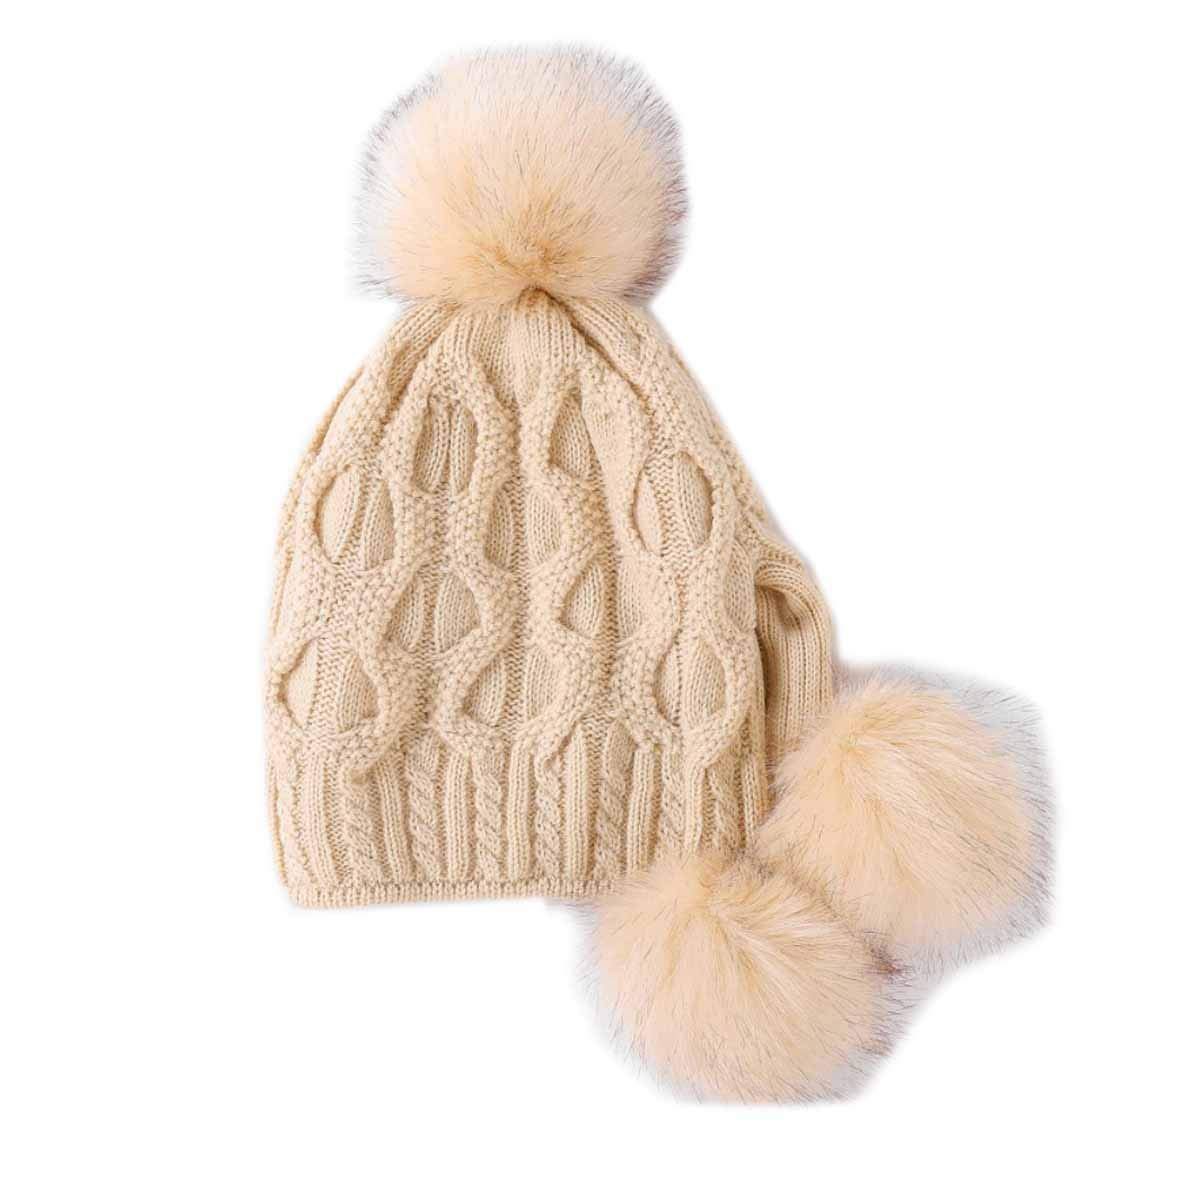 d120b2e3e04 Get Quotations · HCY 1Pcs Women Girls Faux Fur Pom Pom Hat Earflap Warm  Knitted Solid Color Beanie Slouchy